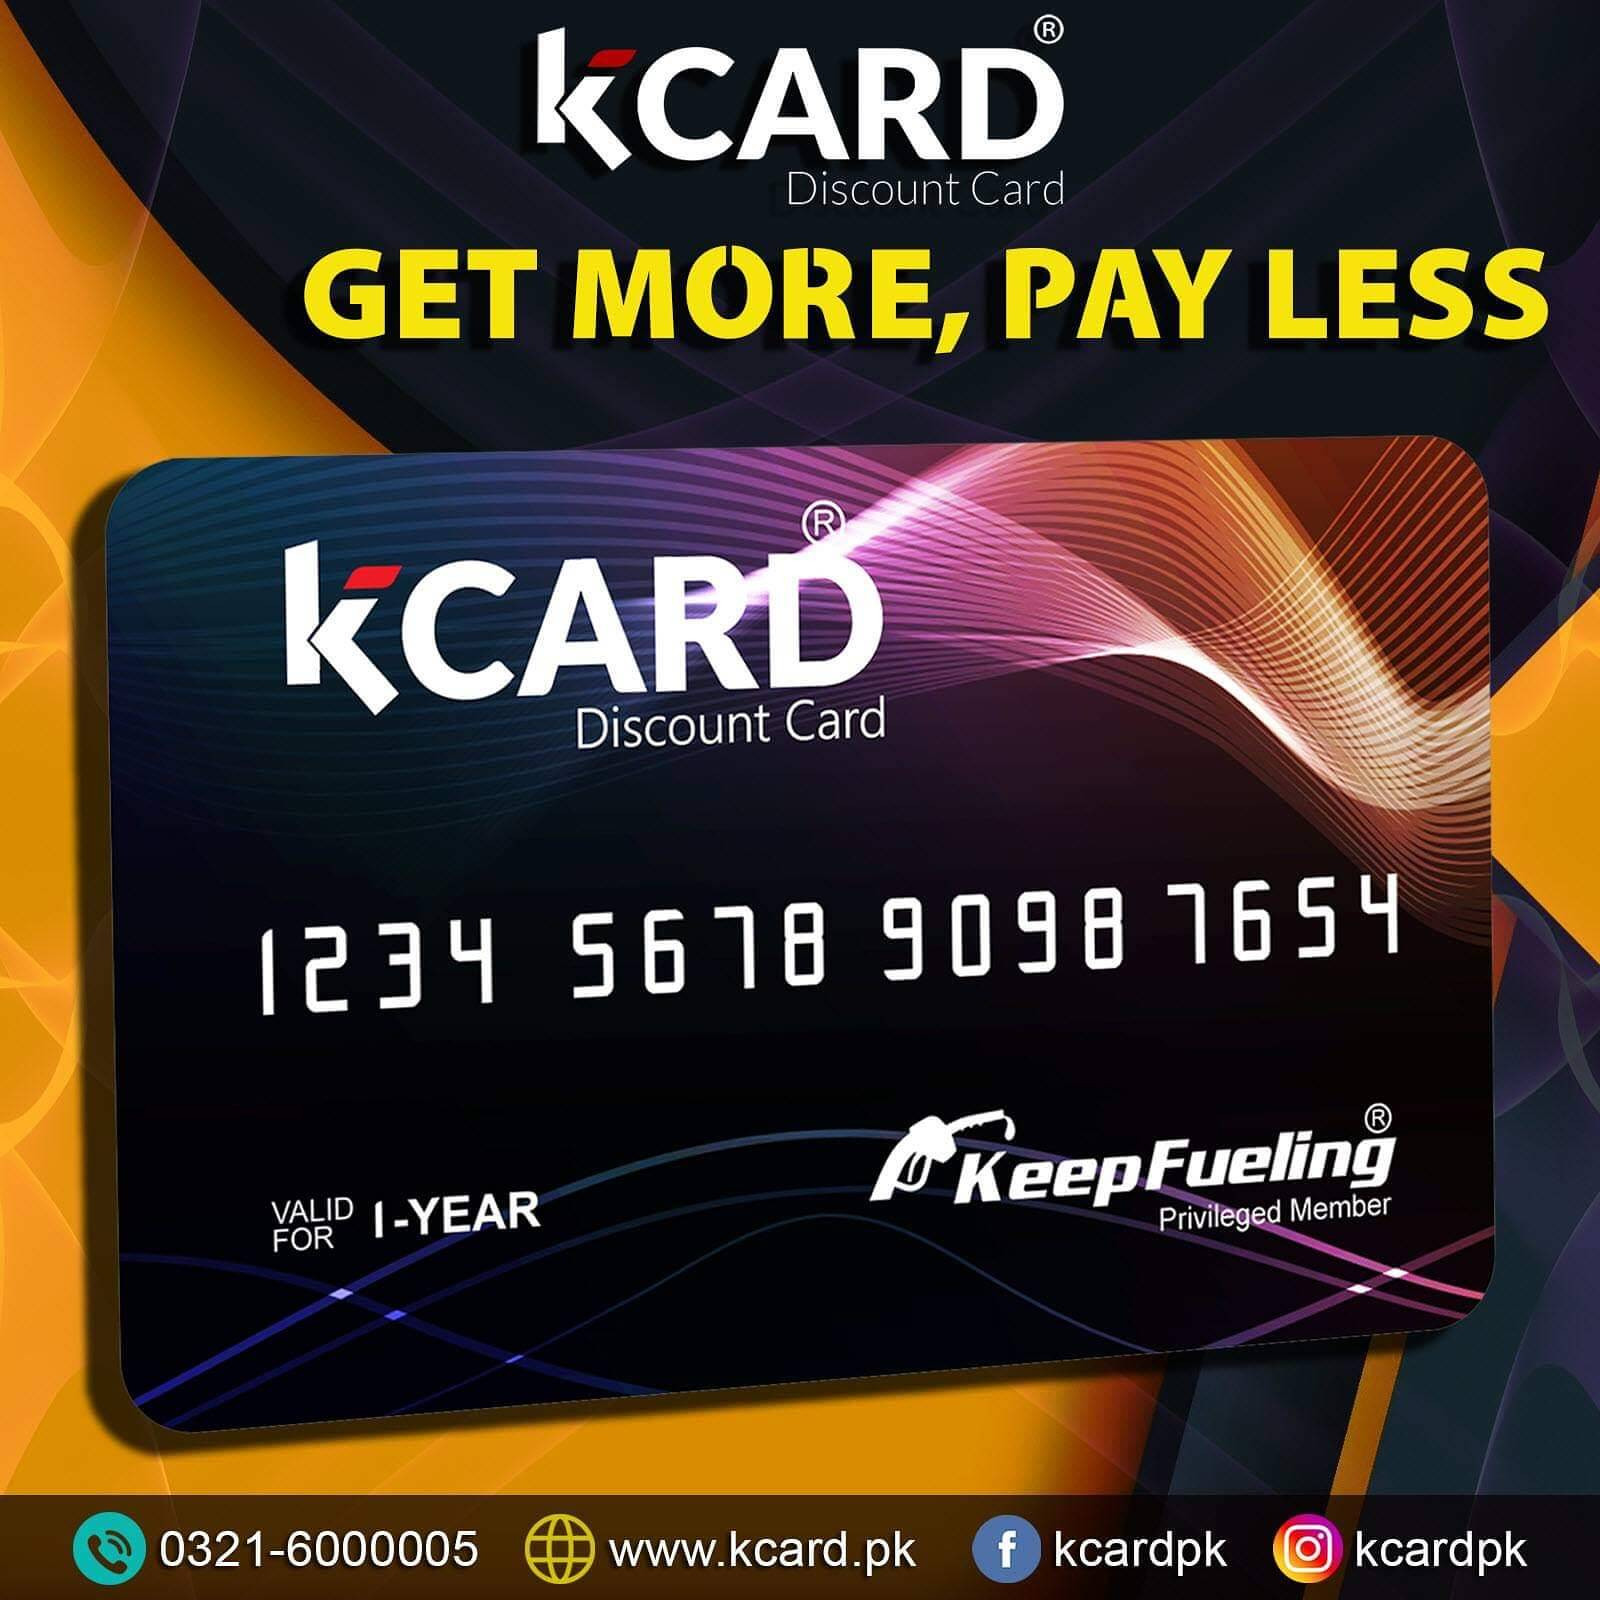 K CARD - Get More, Pay Less